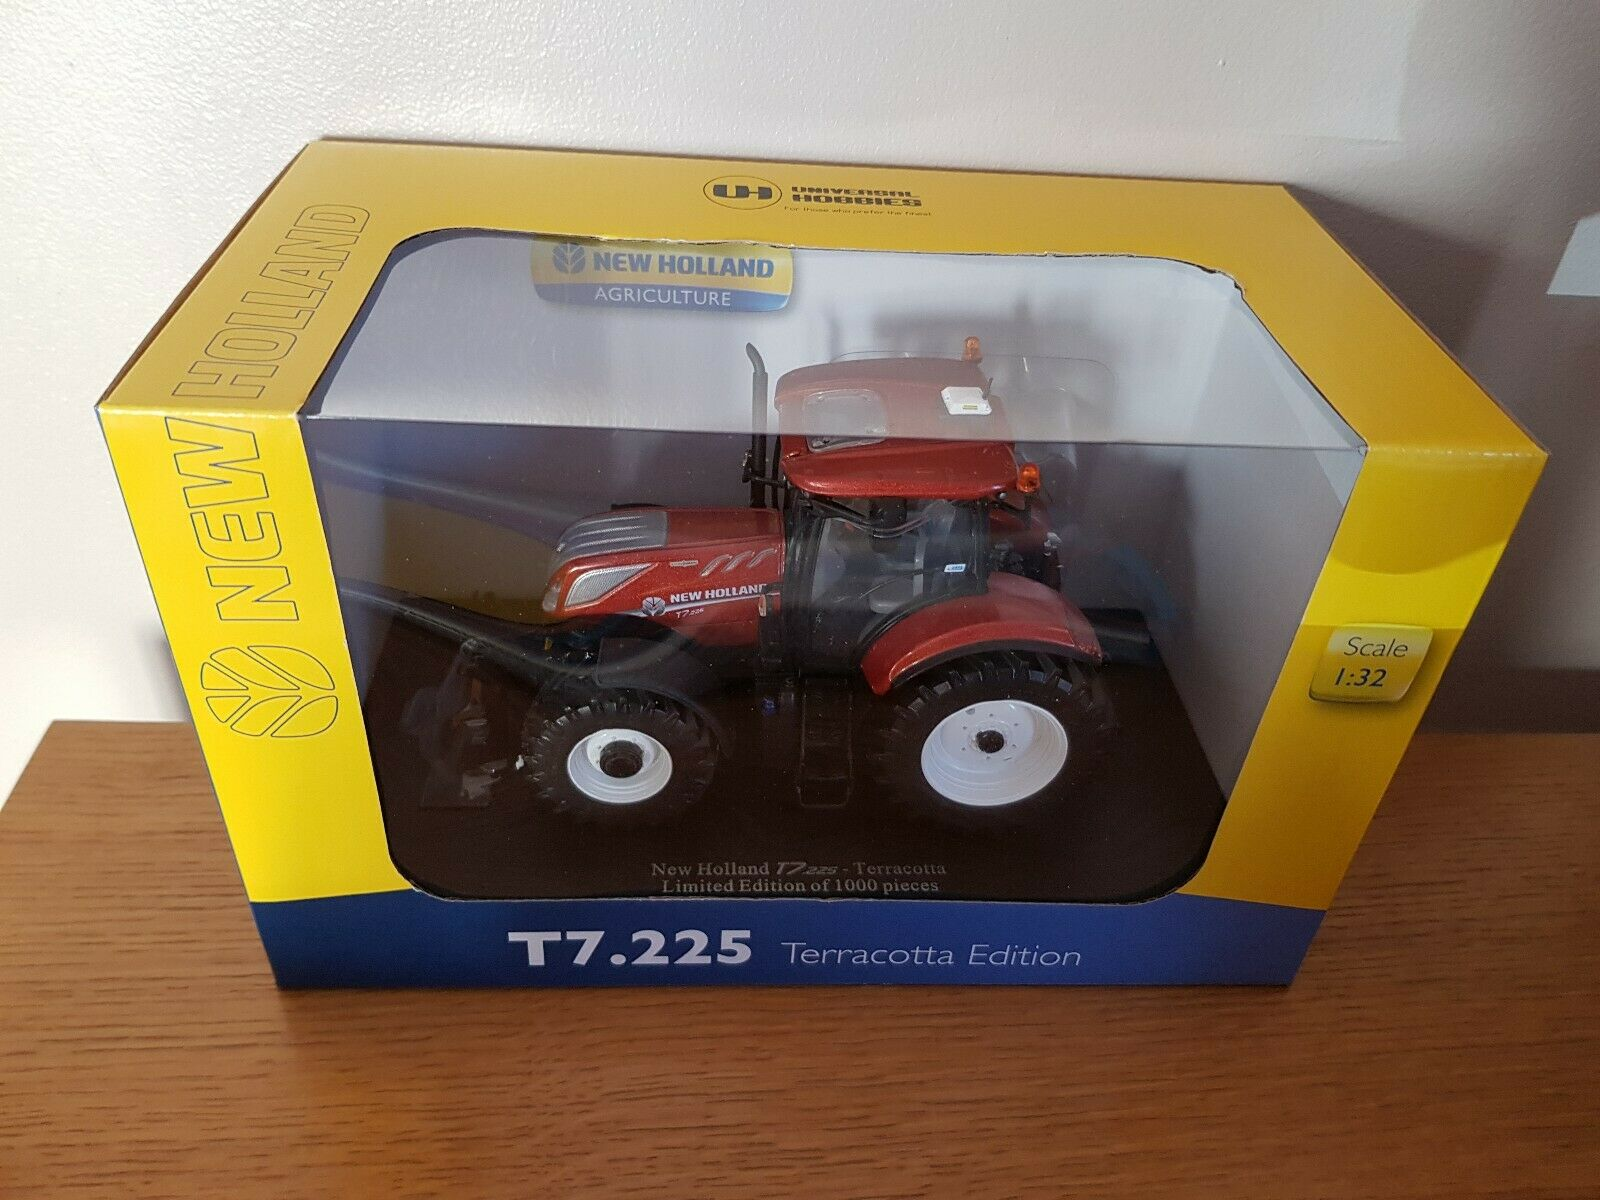 UH NEW HOLLAND FIAT T7.225 TRACTOR 1 32 SCALE - TERRACOTTA 100YR ANNIVERSARY